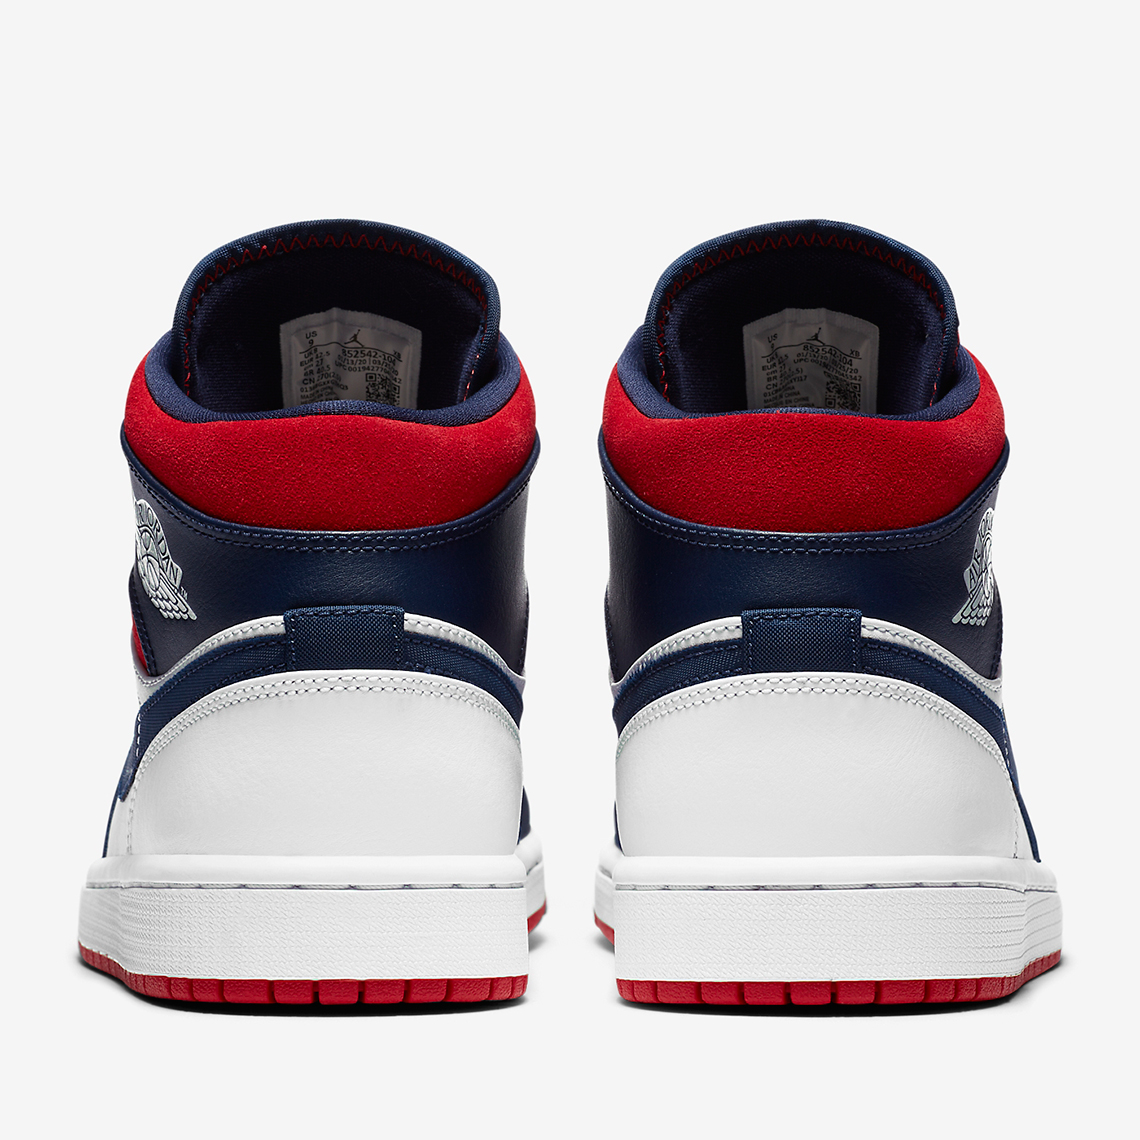 red white and blue ones